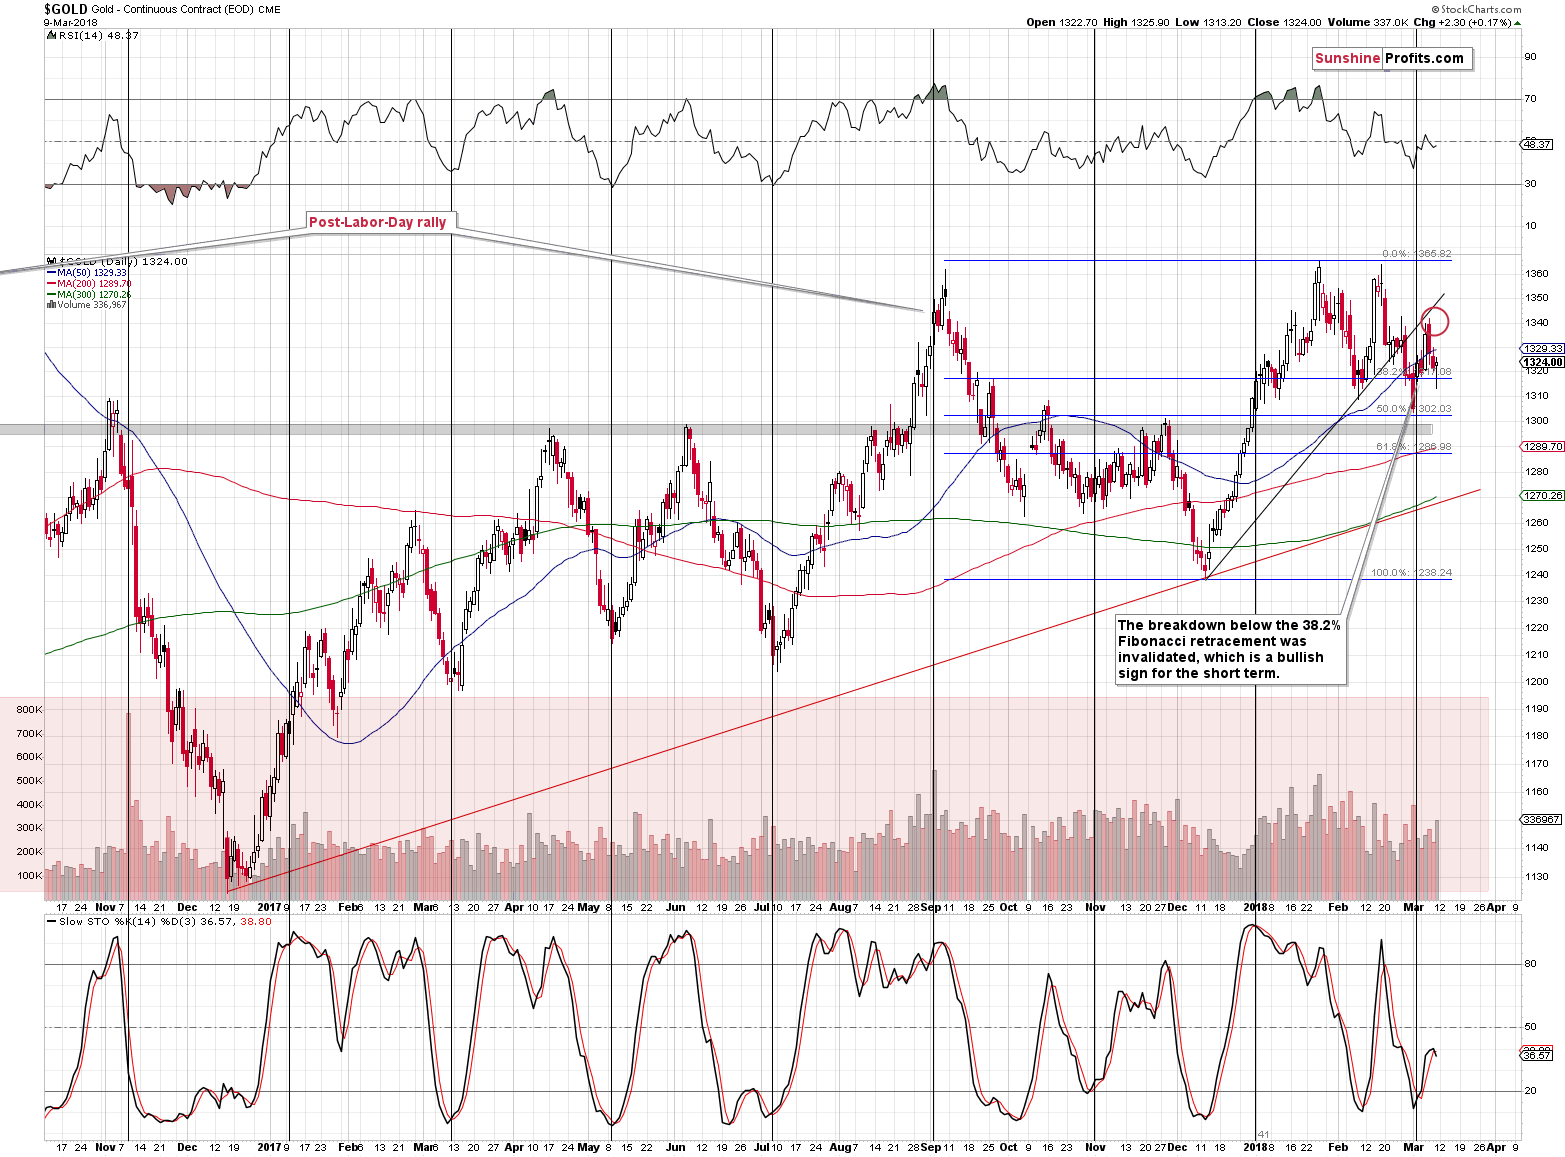 Gold short-term price chart - Gold spot price